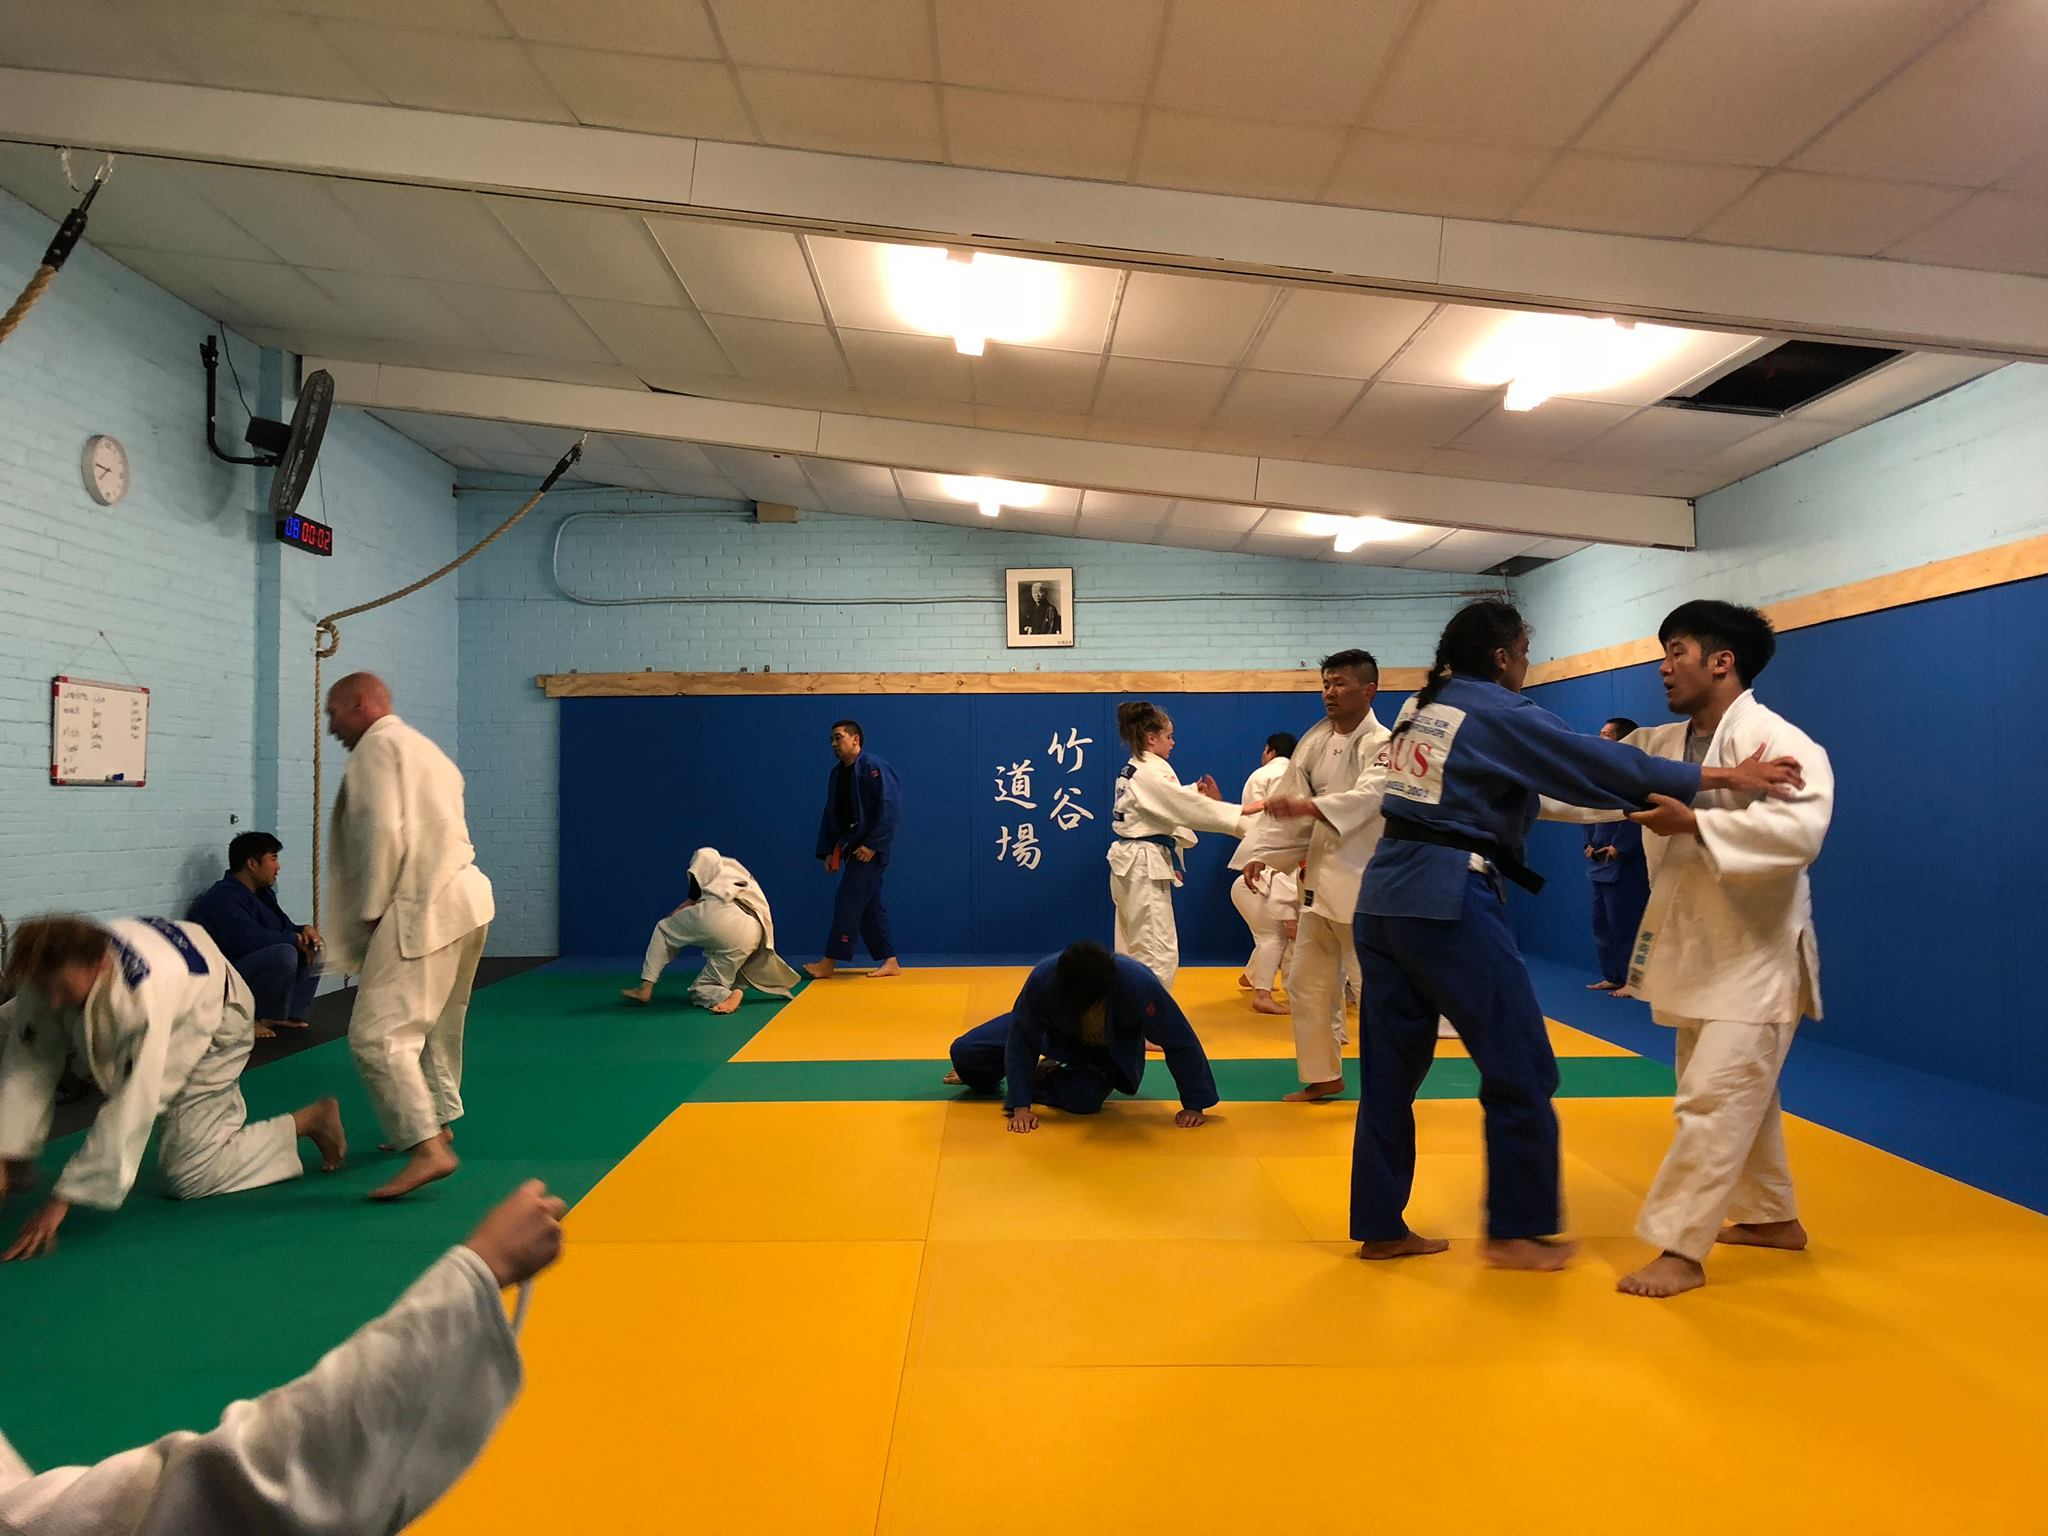 The old Taketani Judo Academy Dojo in Oakleigh